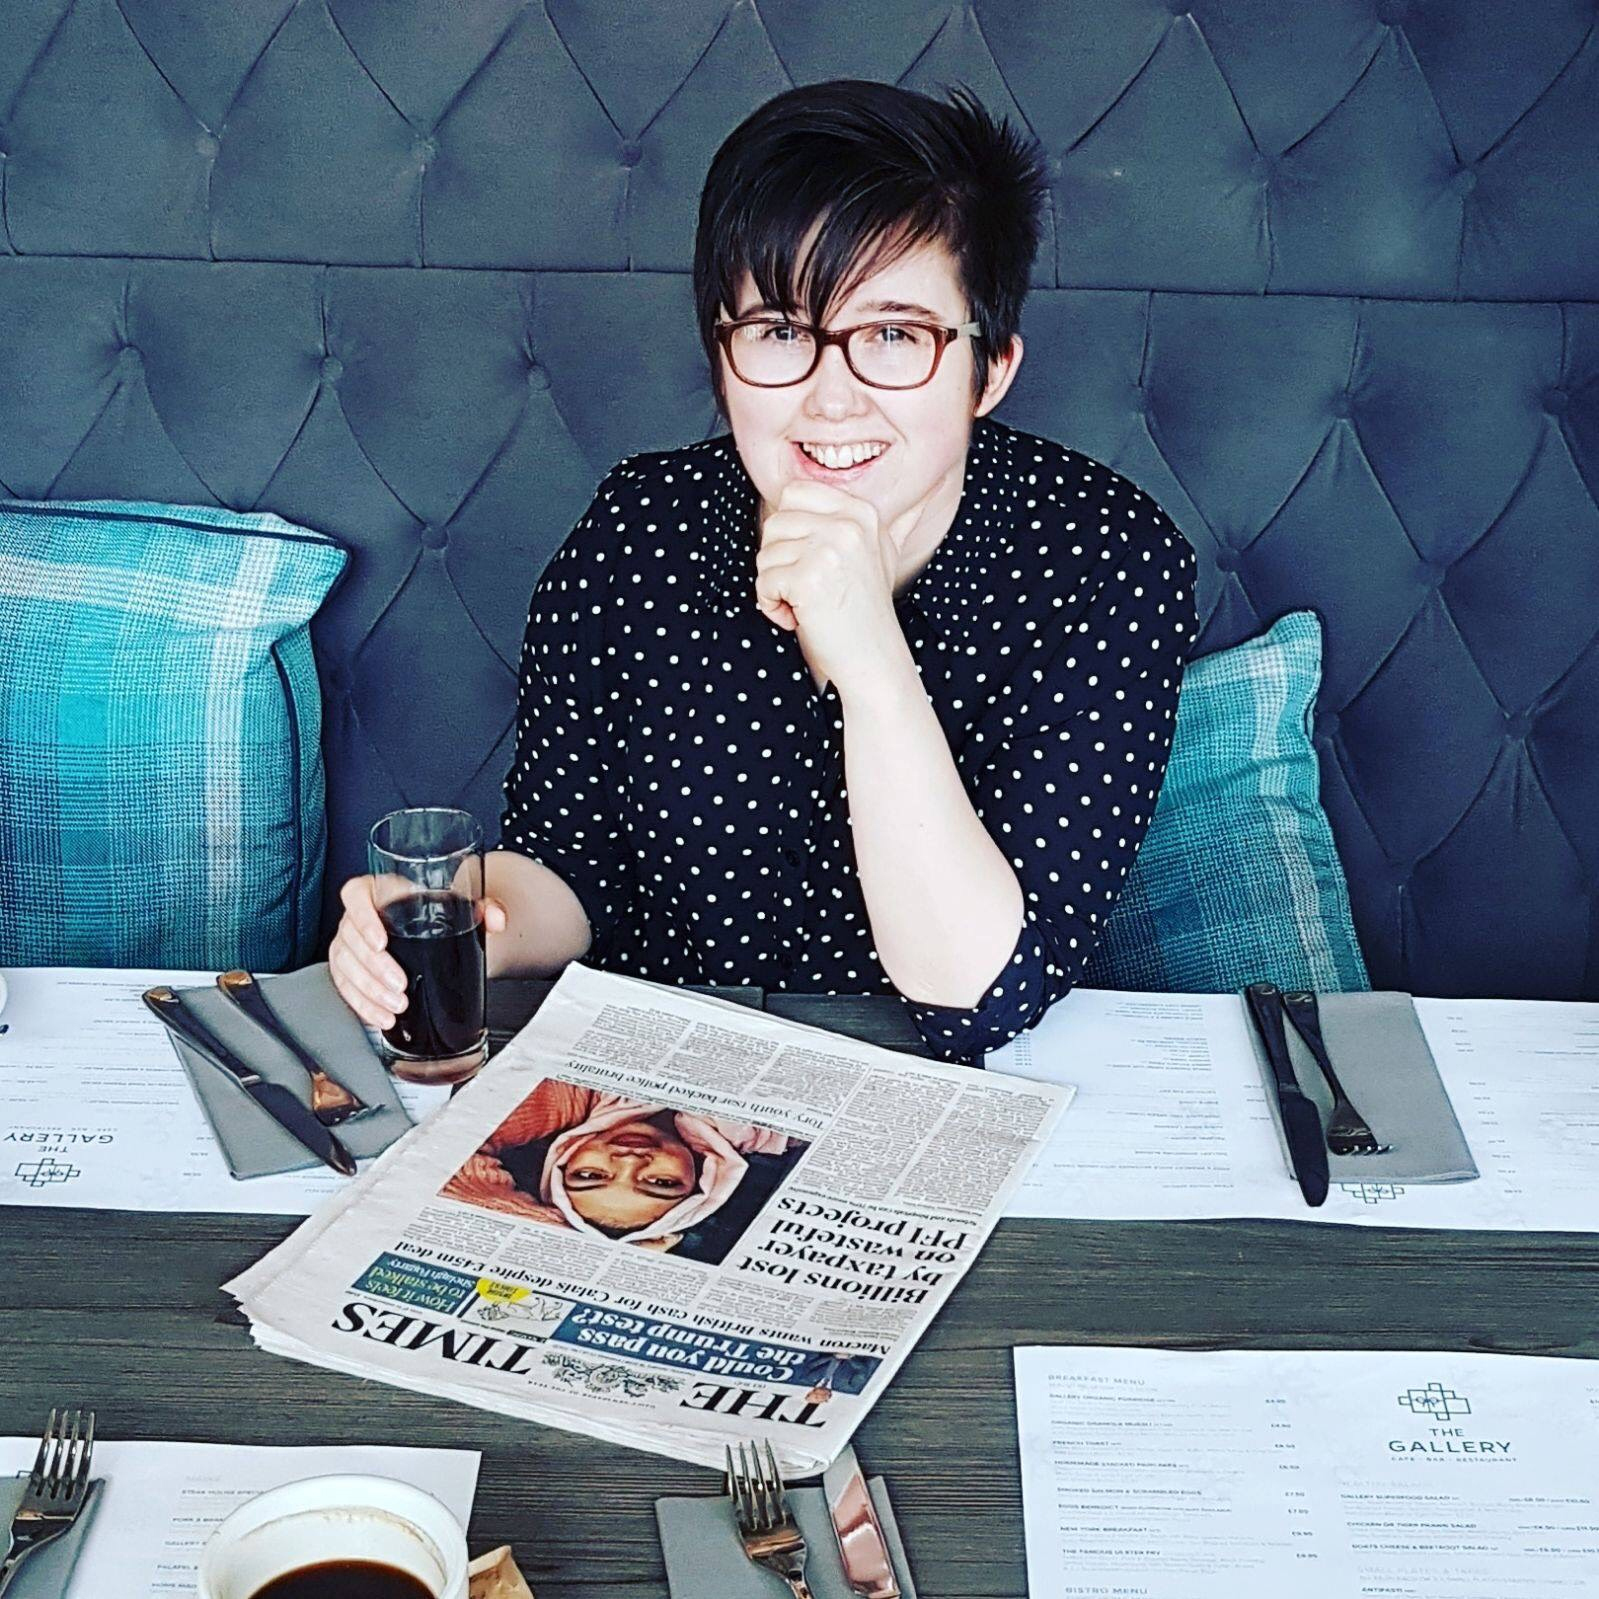 Obituary: Lyra McKee, journalist who wrote about the troubles in her native Northern Ireland